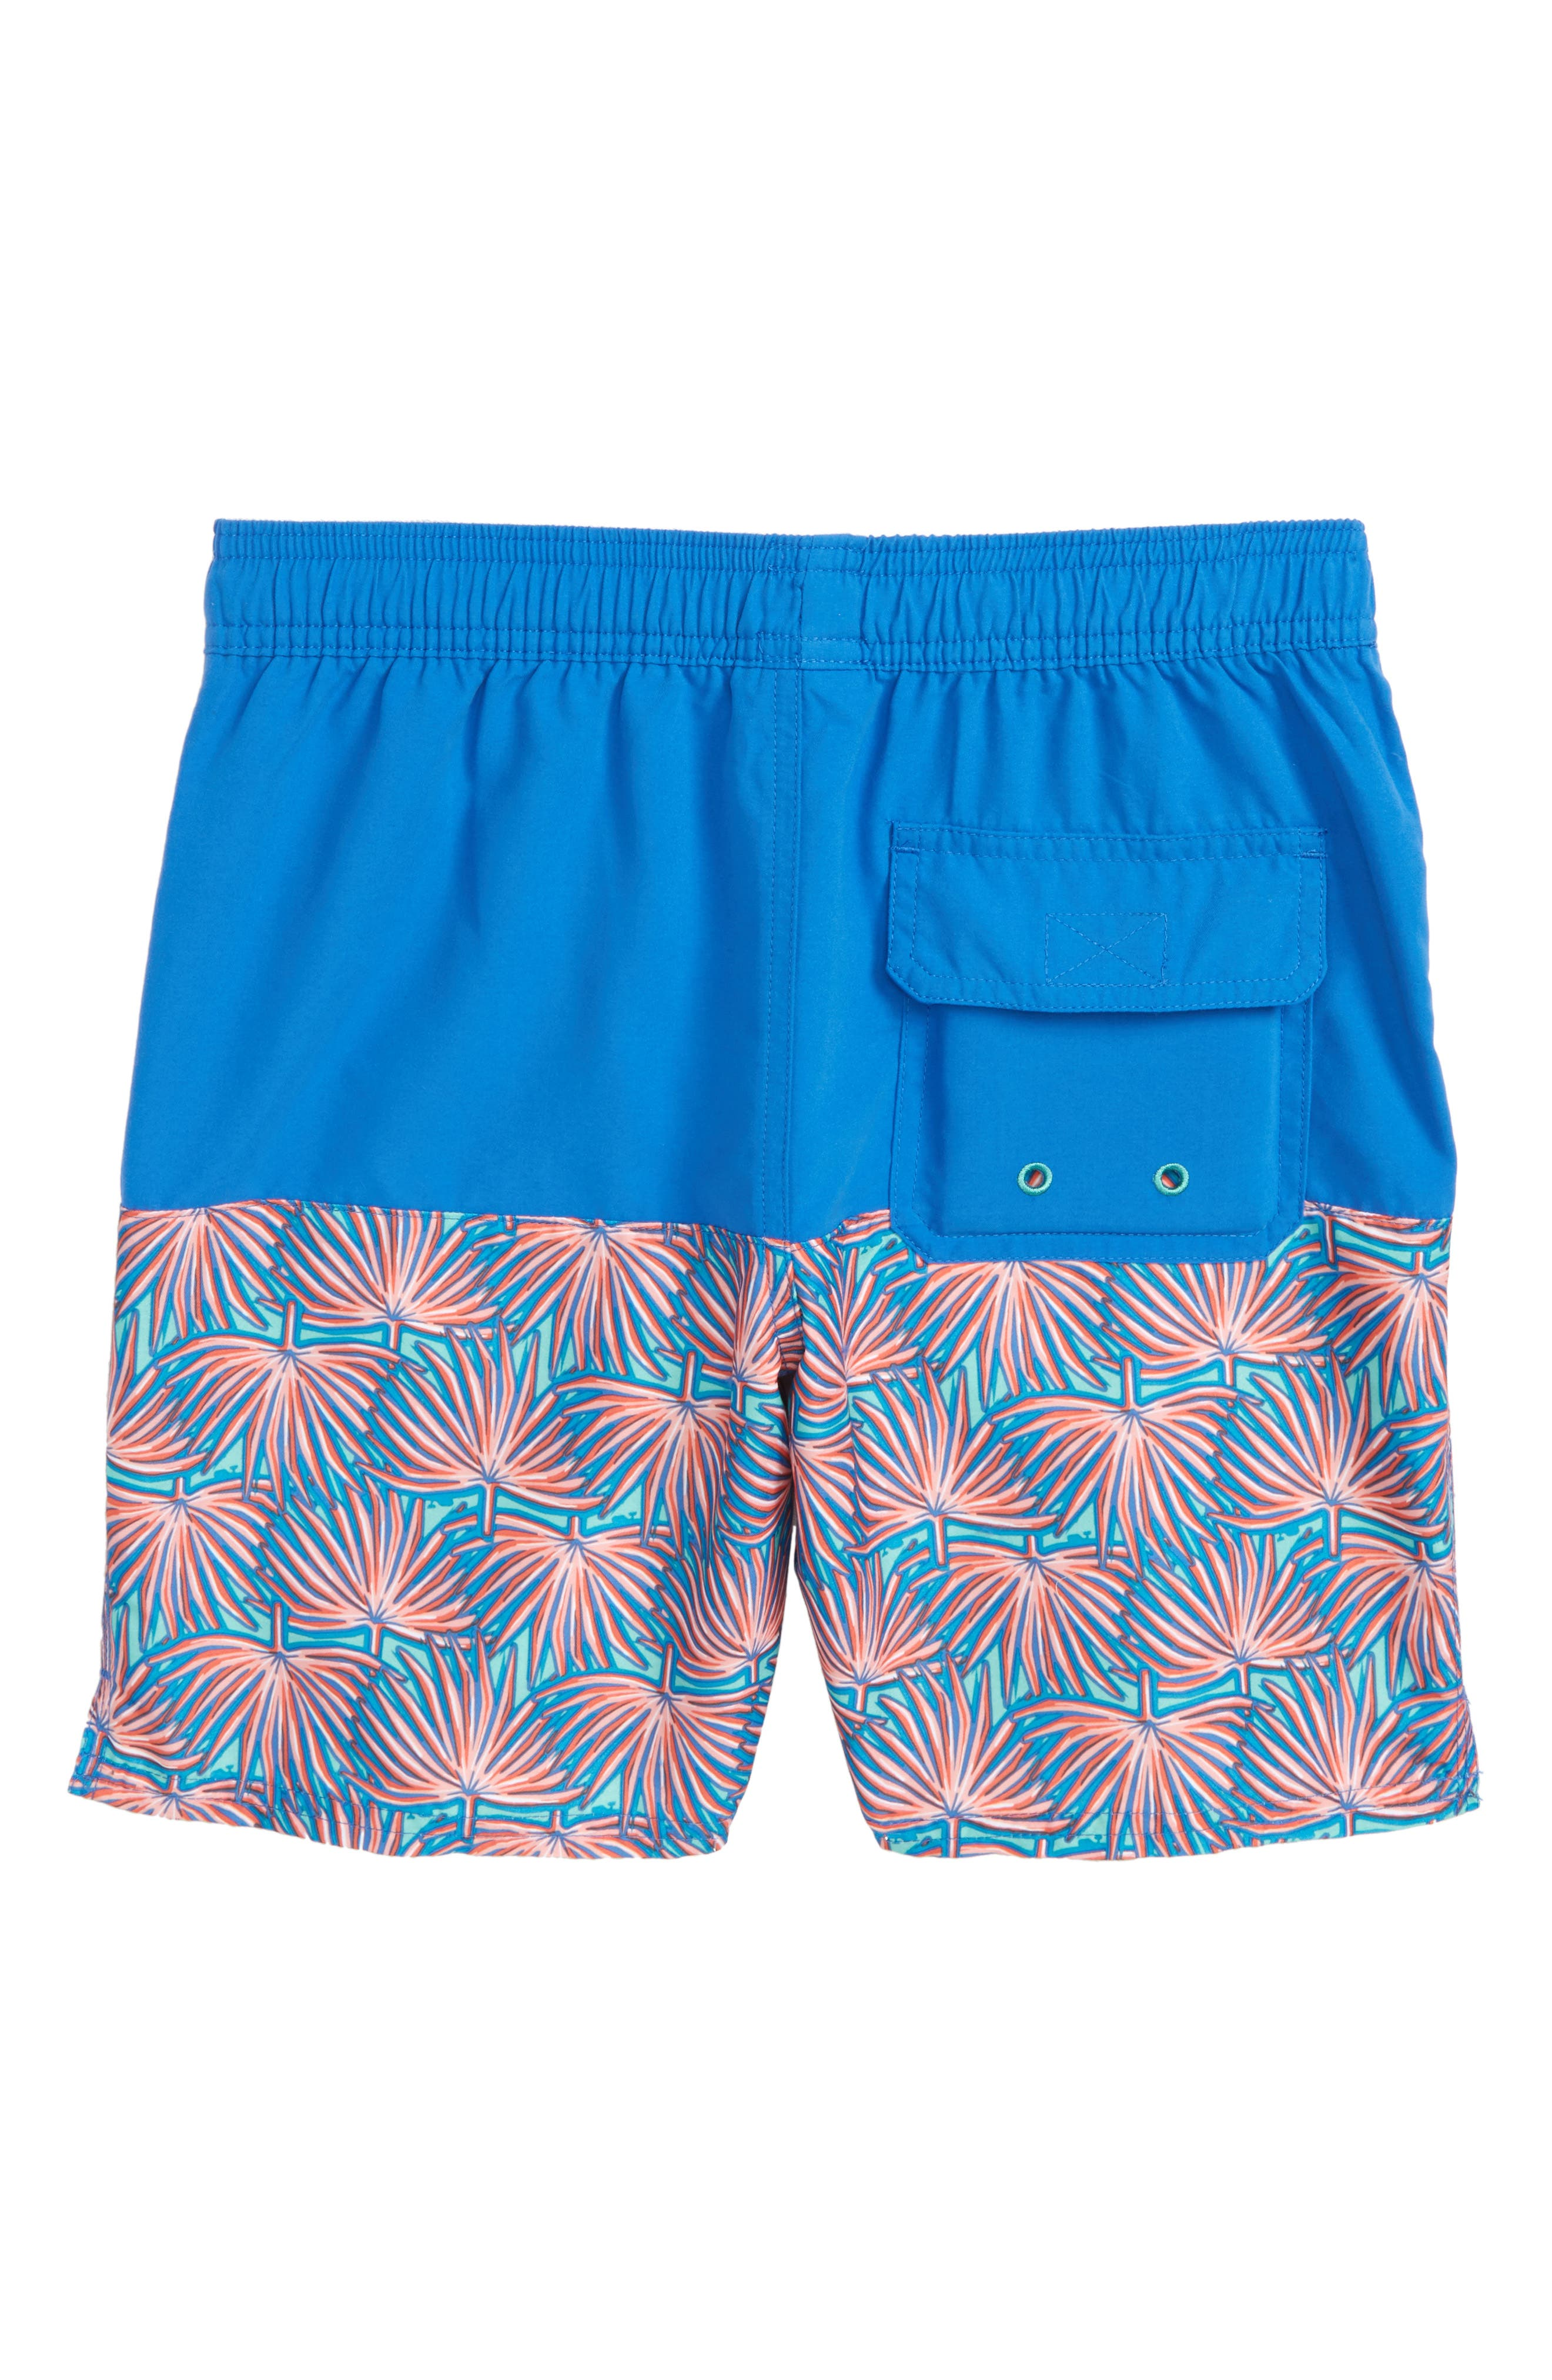 Chappy Fan Palm Print Swim Trunks,                             Alternate thumbnail 2, color,                             Capri Blue